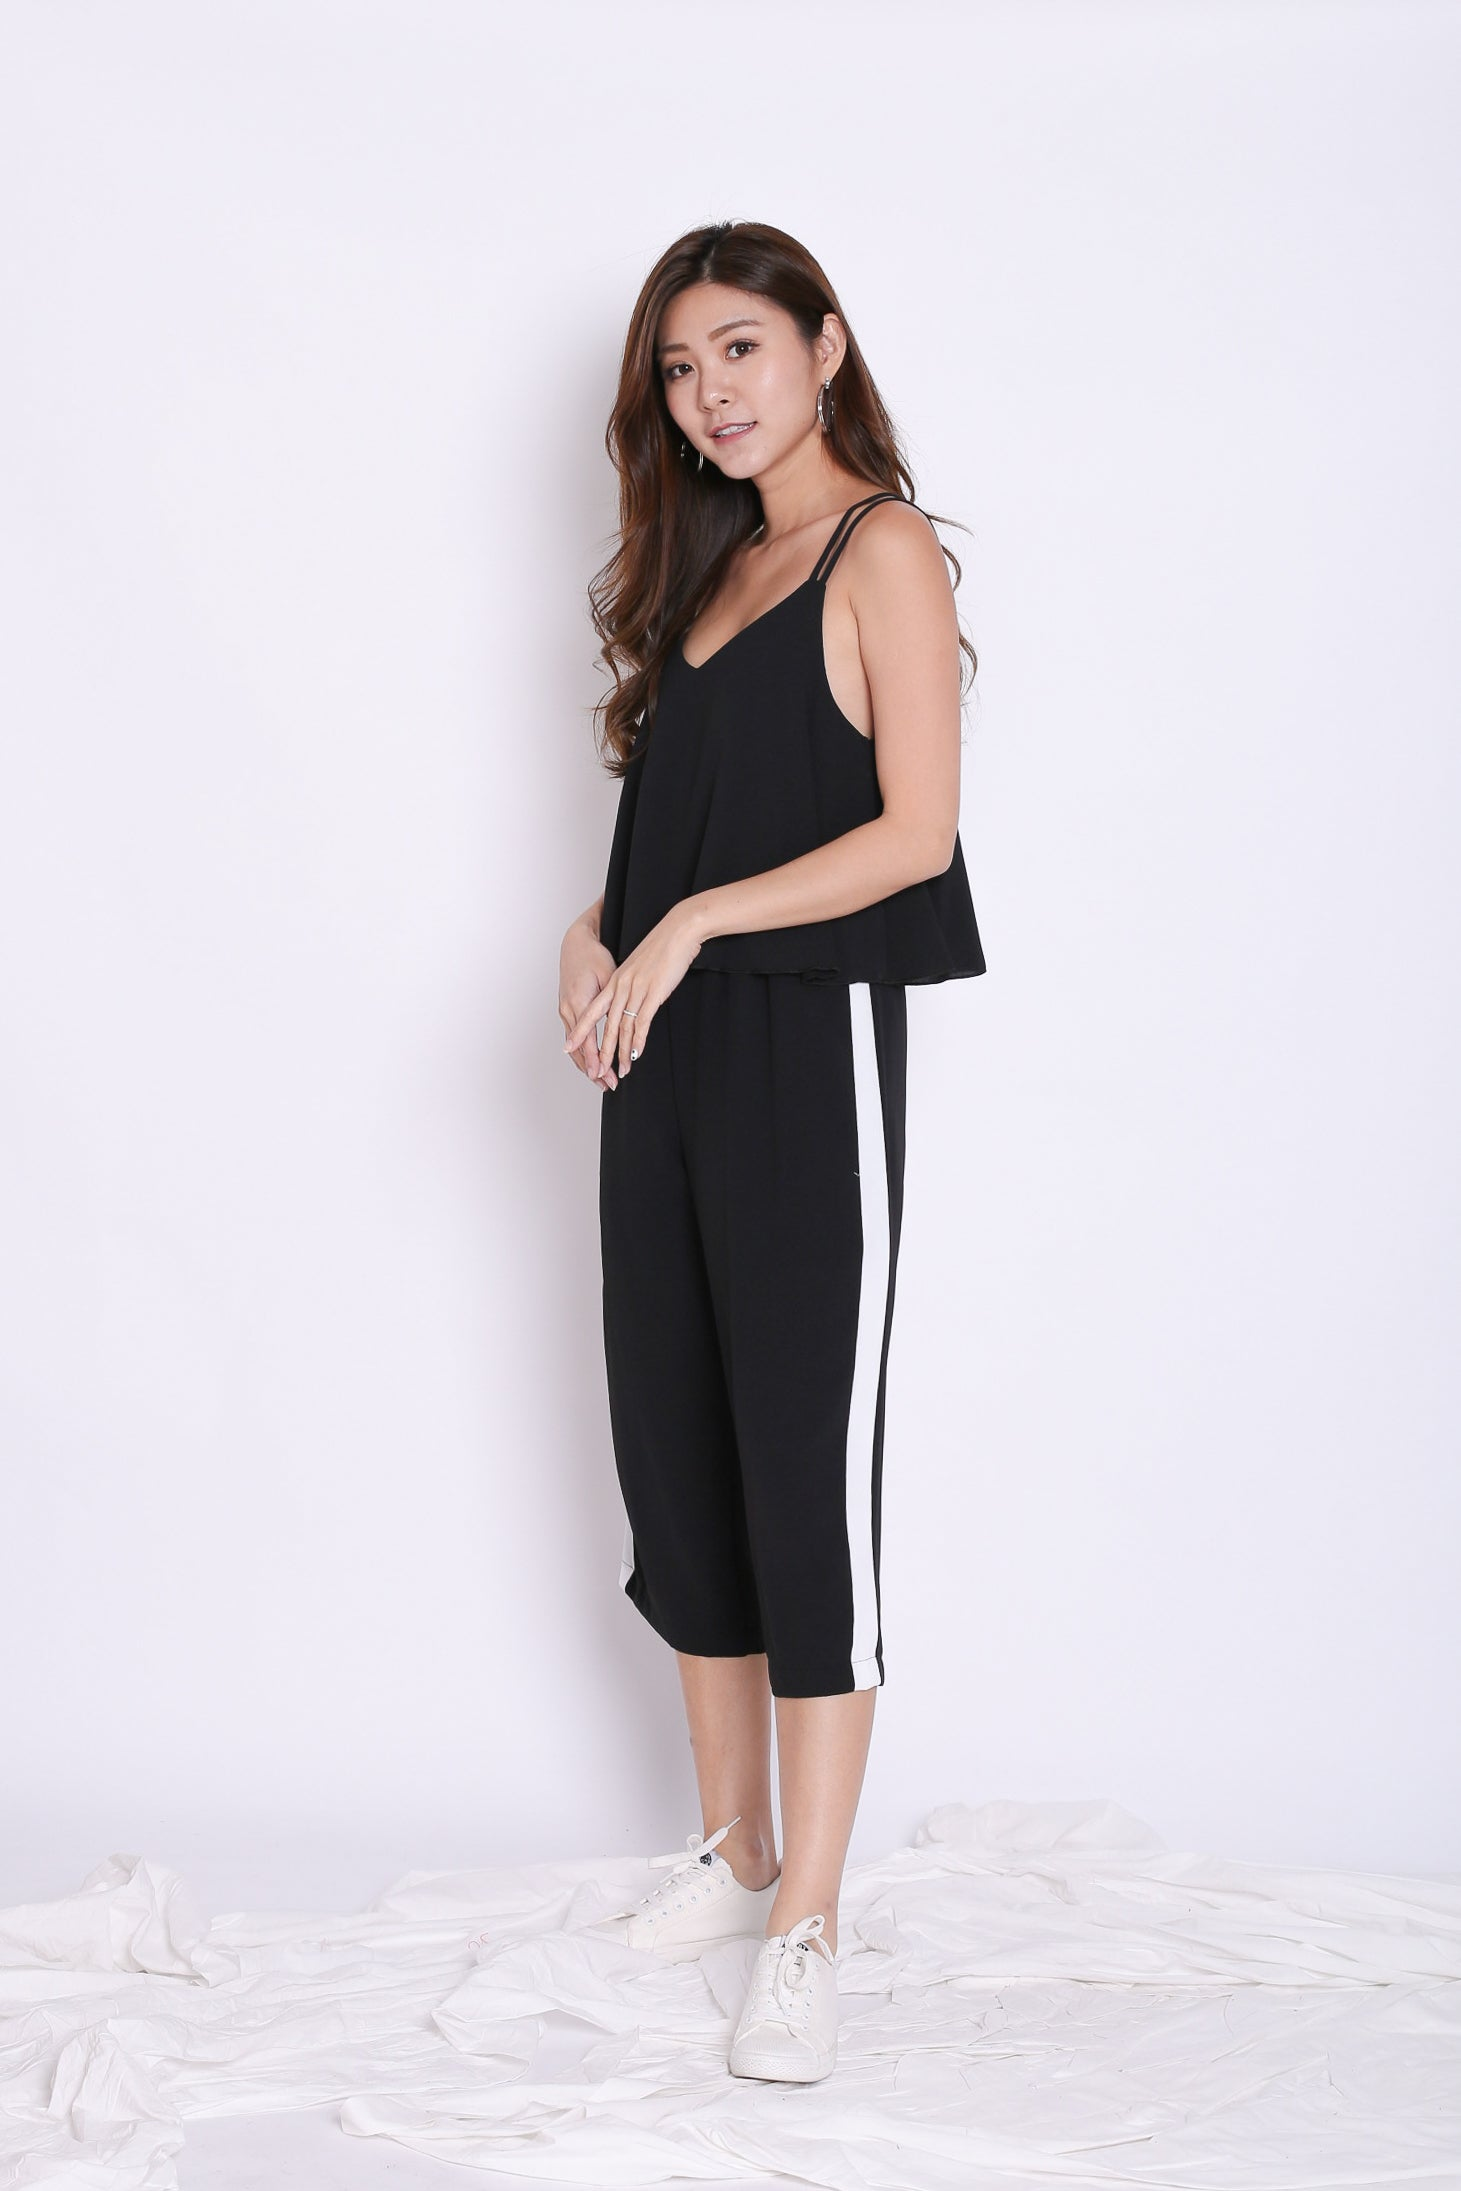 VARSITY CULOTTES JUMPSUIT IN BLACK